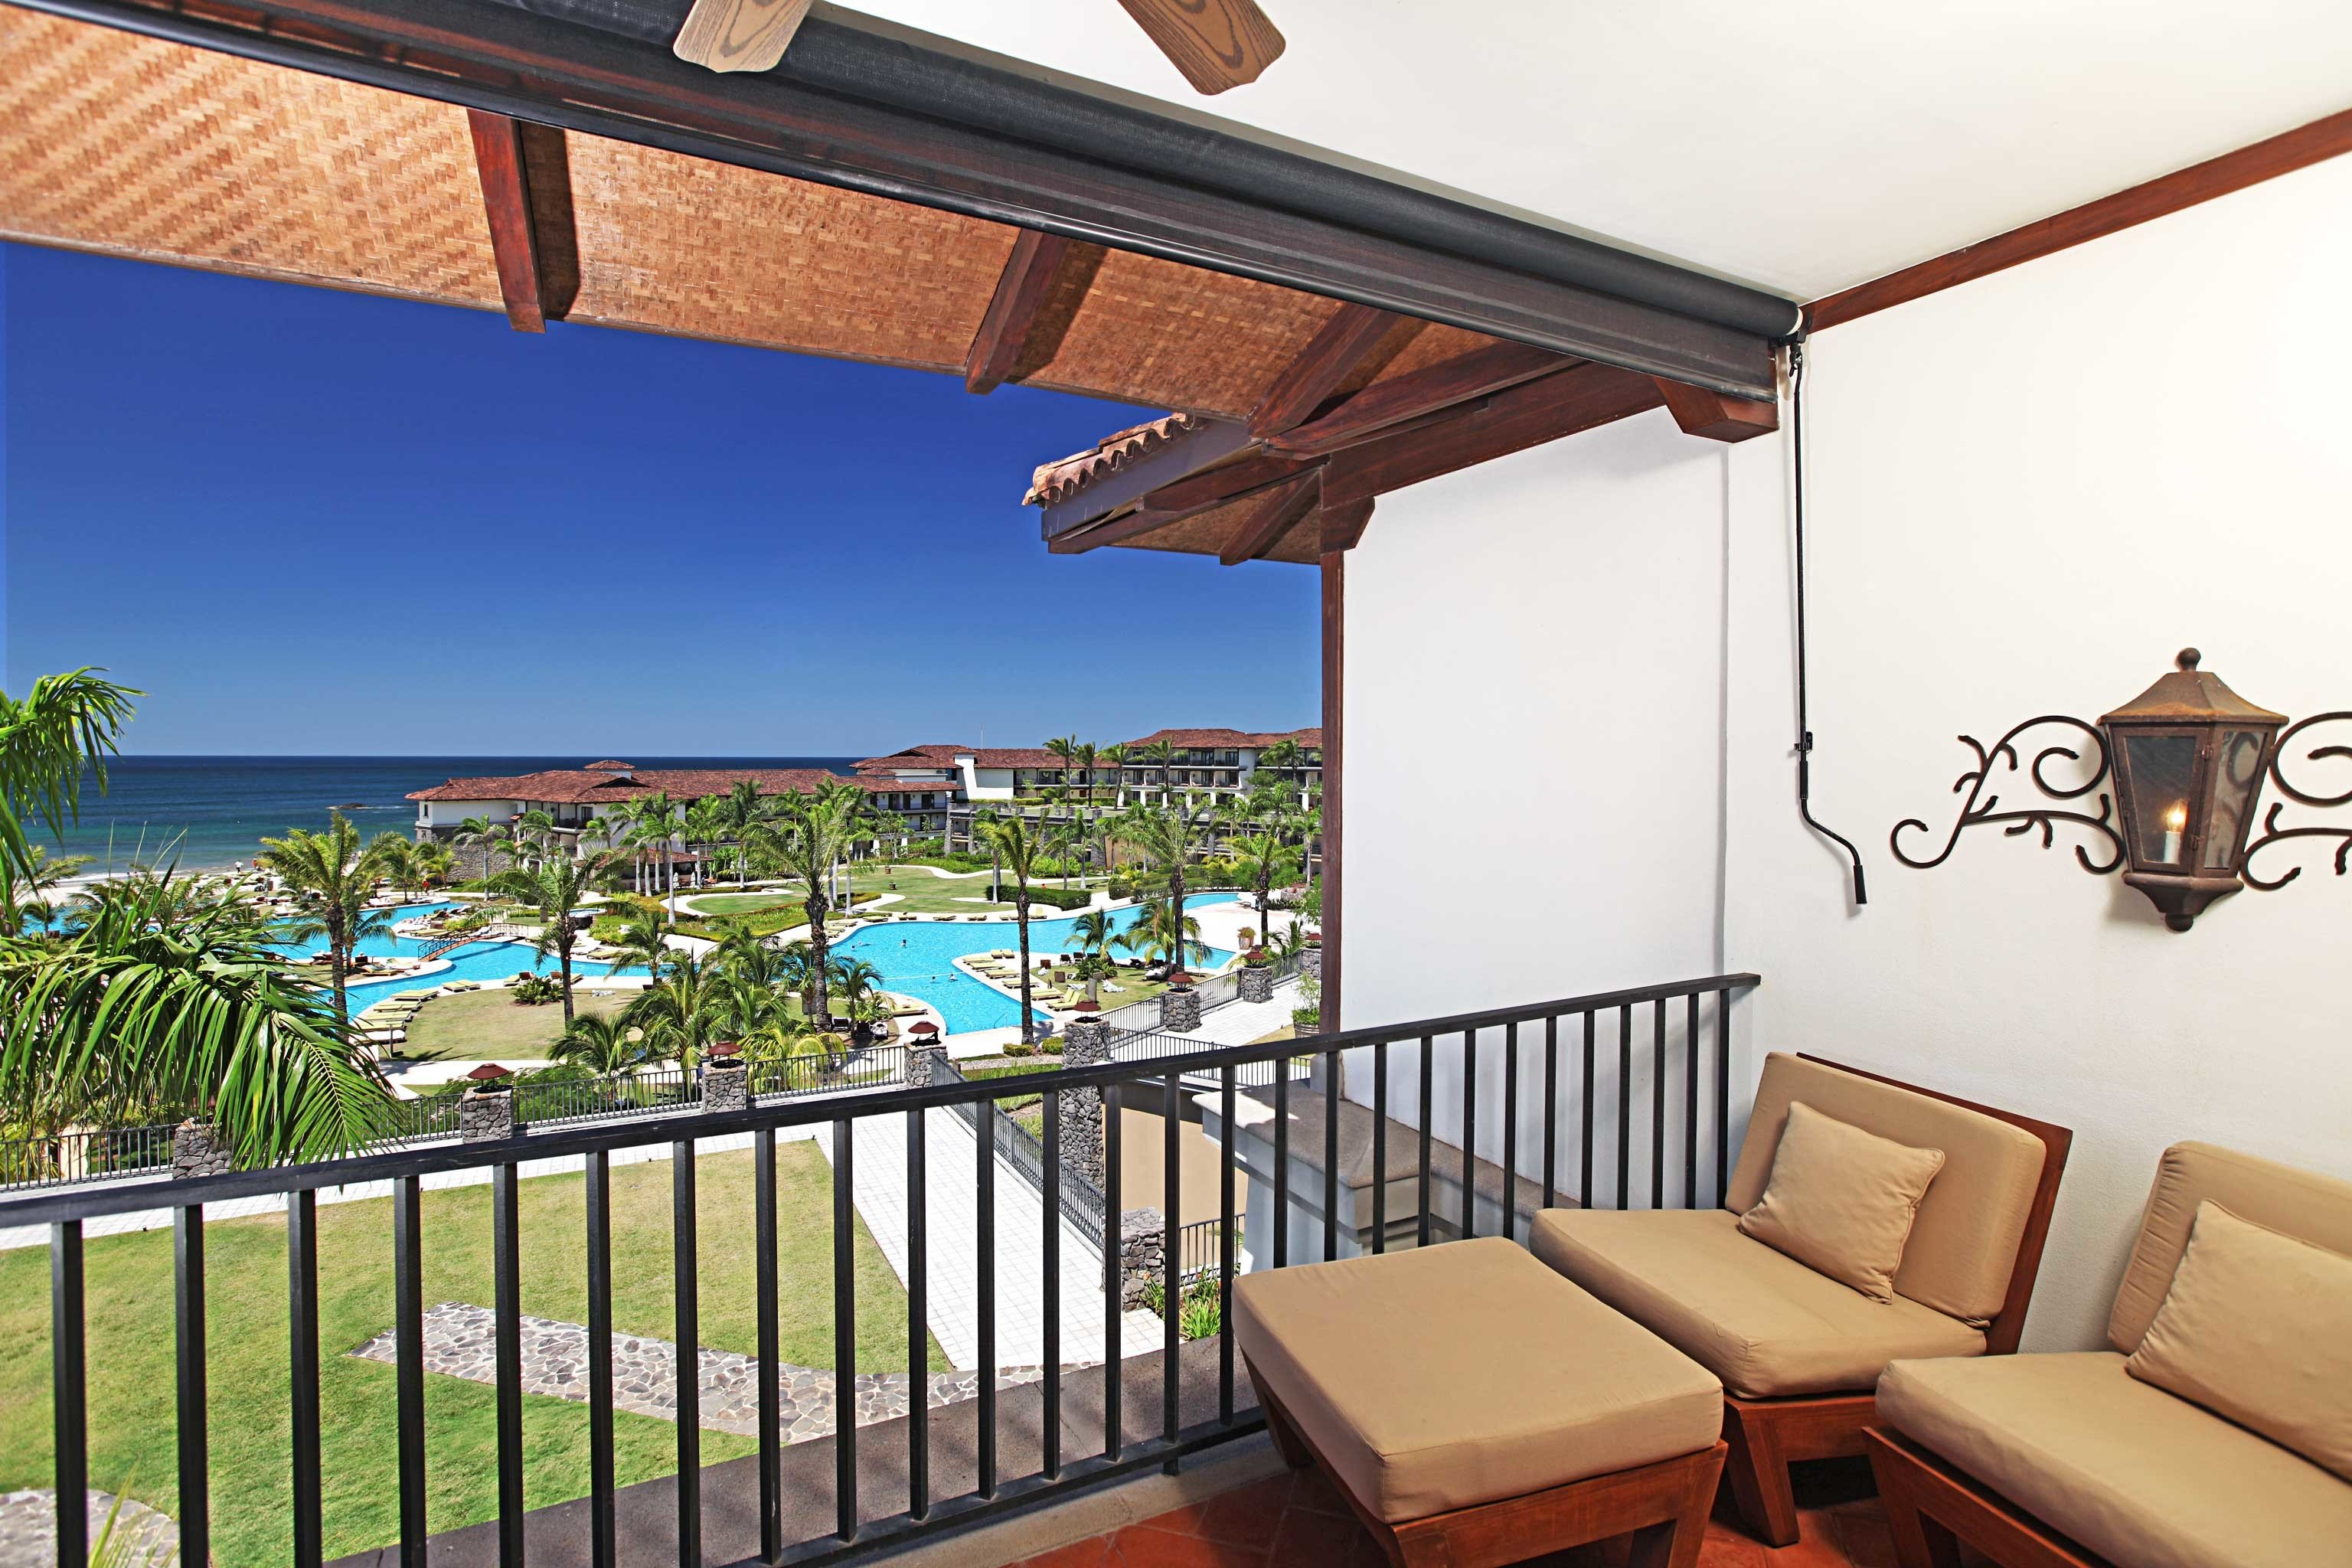 All-inclusive Architecture Balcony Buildings Exterior Pool Resort property Villa home cottage outdoor structure Deck